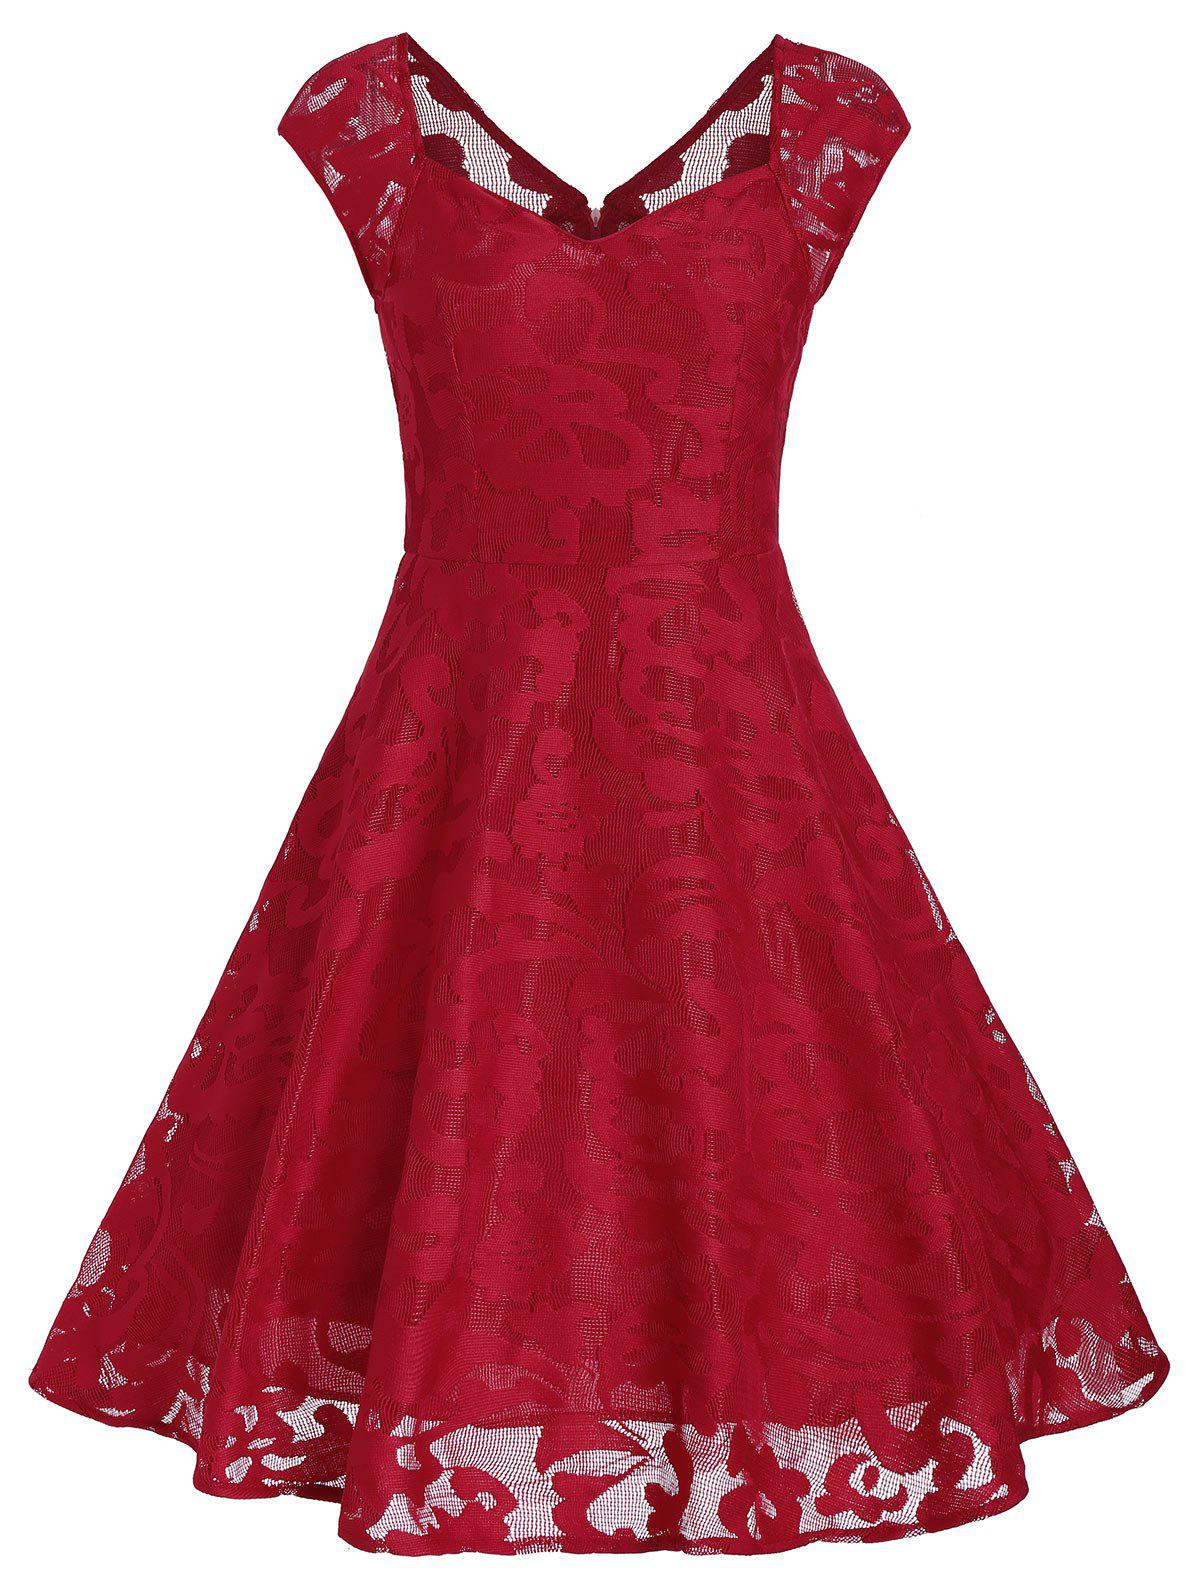 Vintage Sweetheart Neck Overlay Dress - RED S